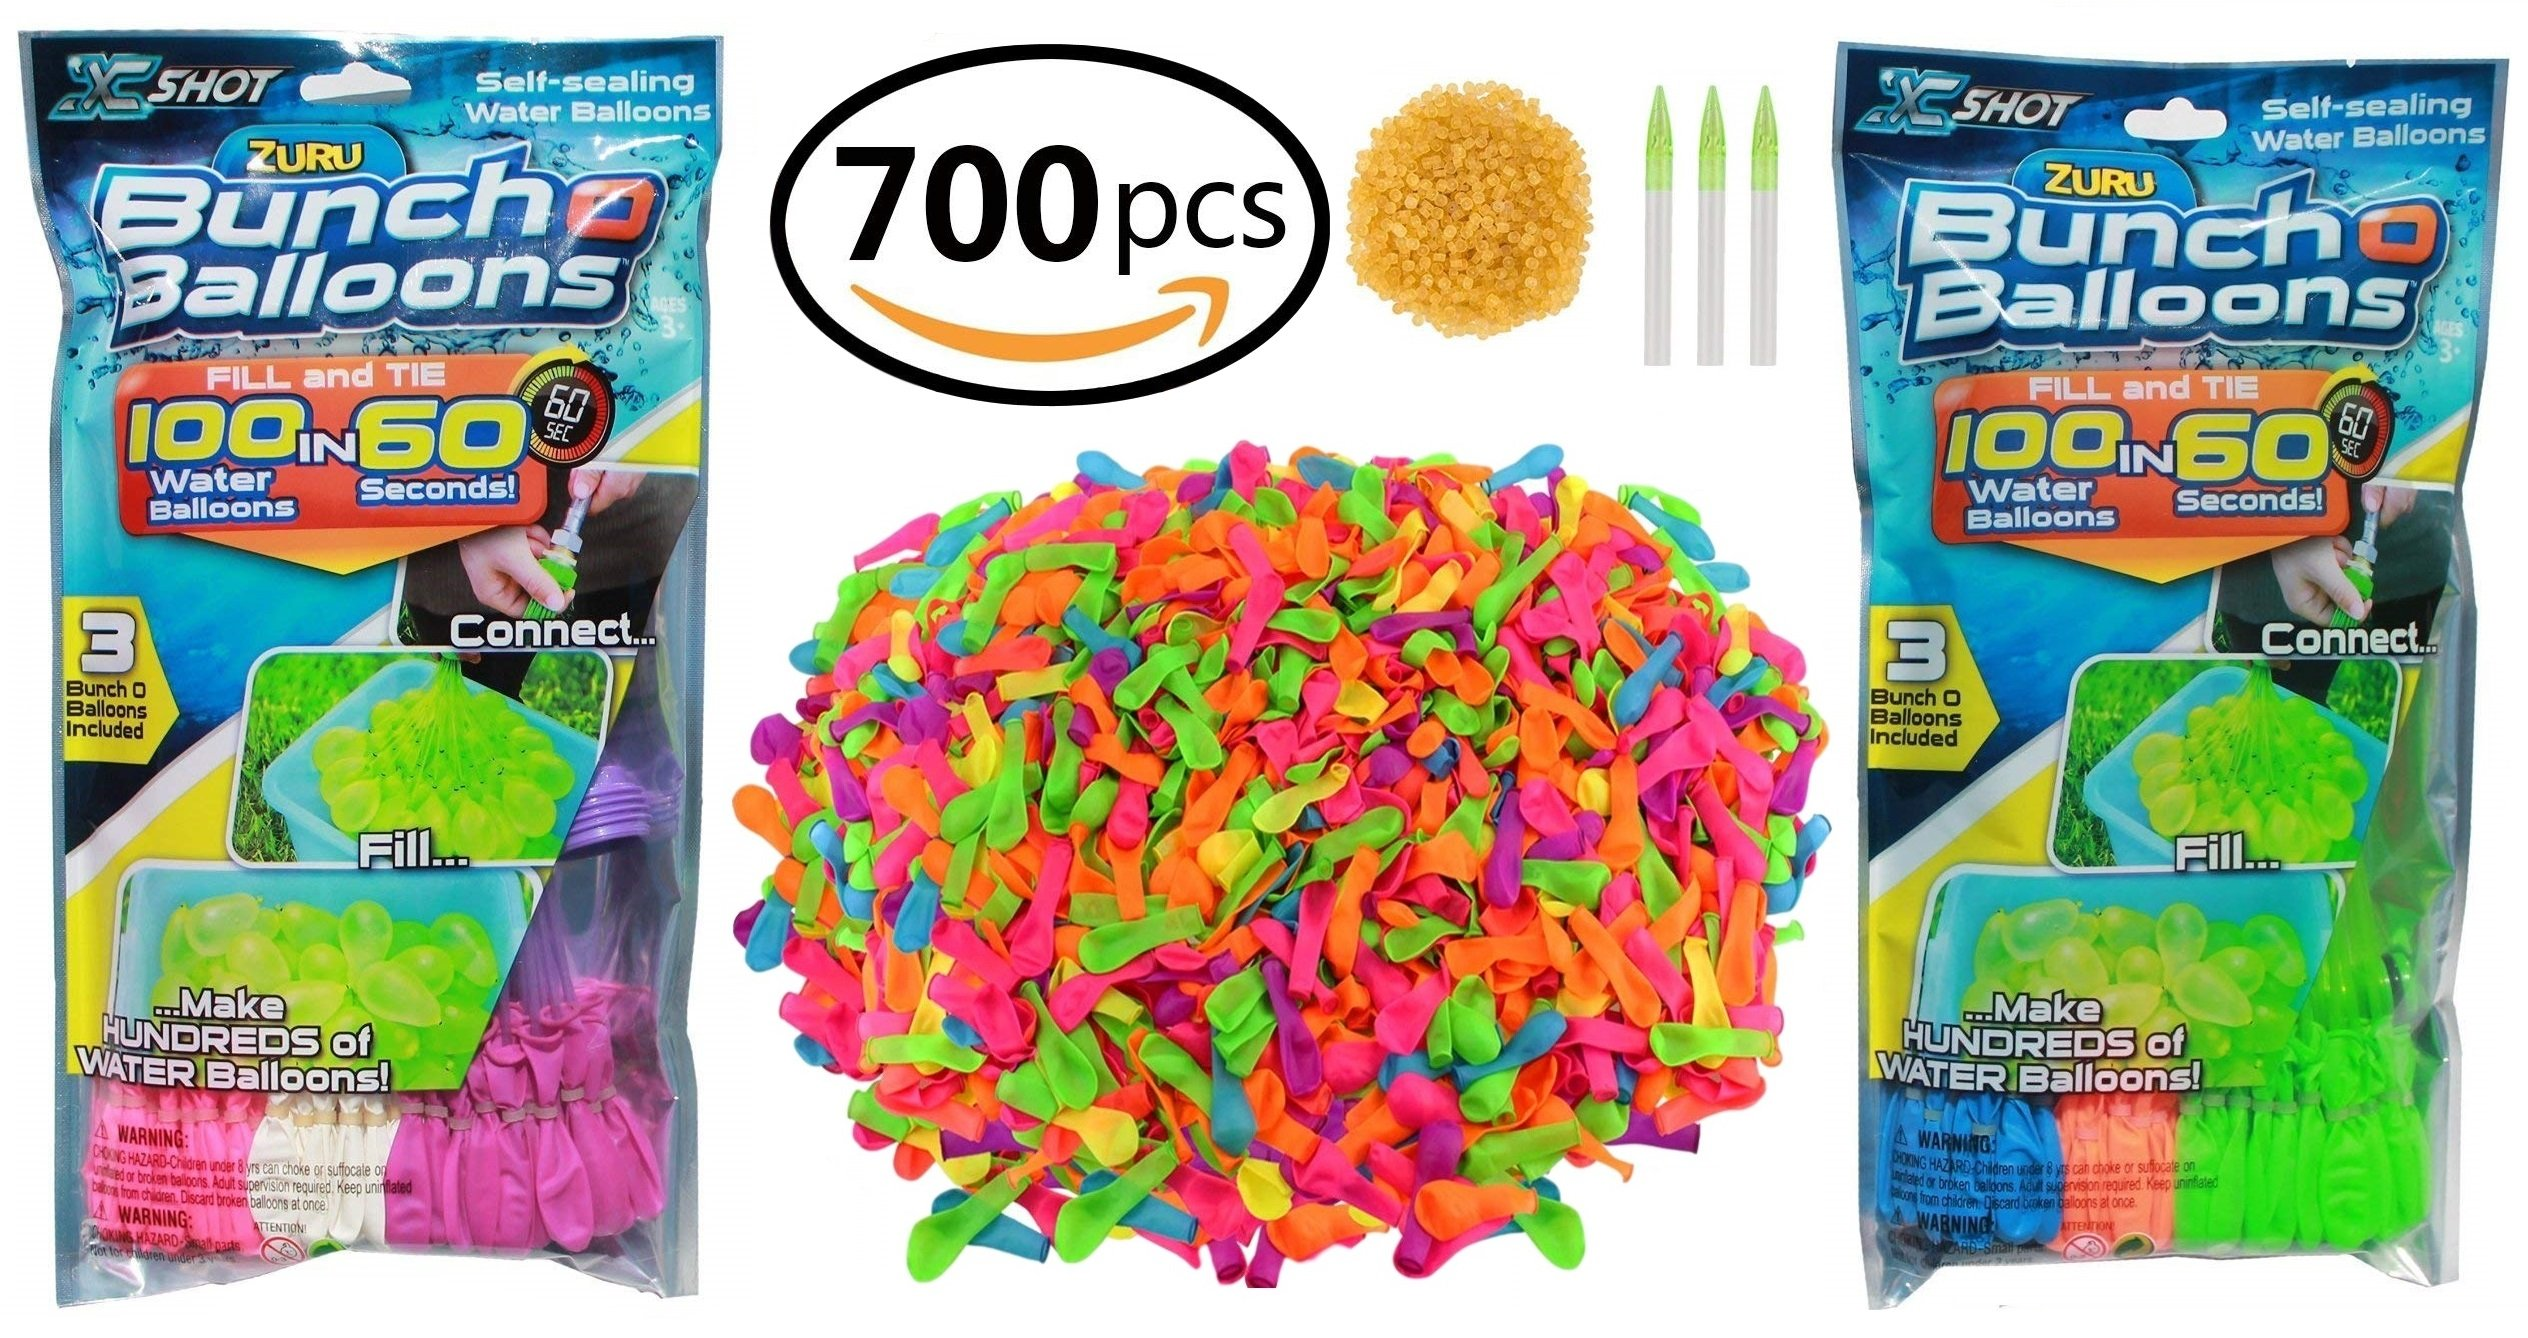 Shark Shop Zuru Bunch O Balloons Instant Self Sealing No Tying Quick Fill Water Balloons| Bundled 700 Piece Summer Party Toy Gift Set| 200 Pack (6 Bunch of Balloons) 500 Pack Rapid Refill Kit